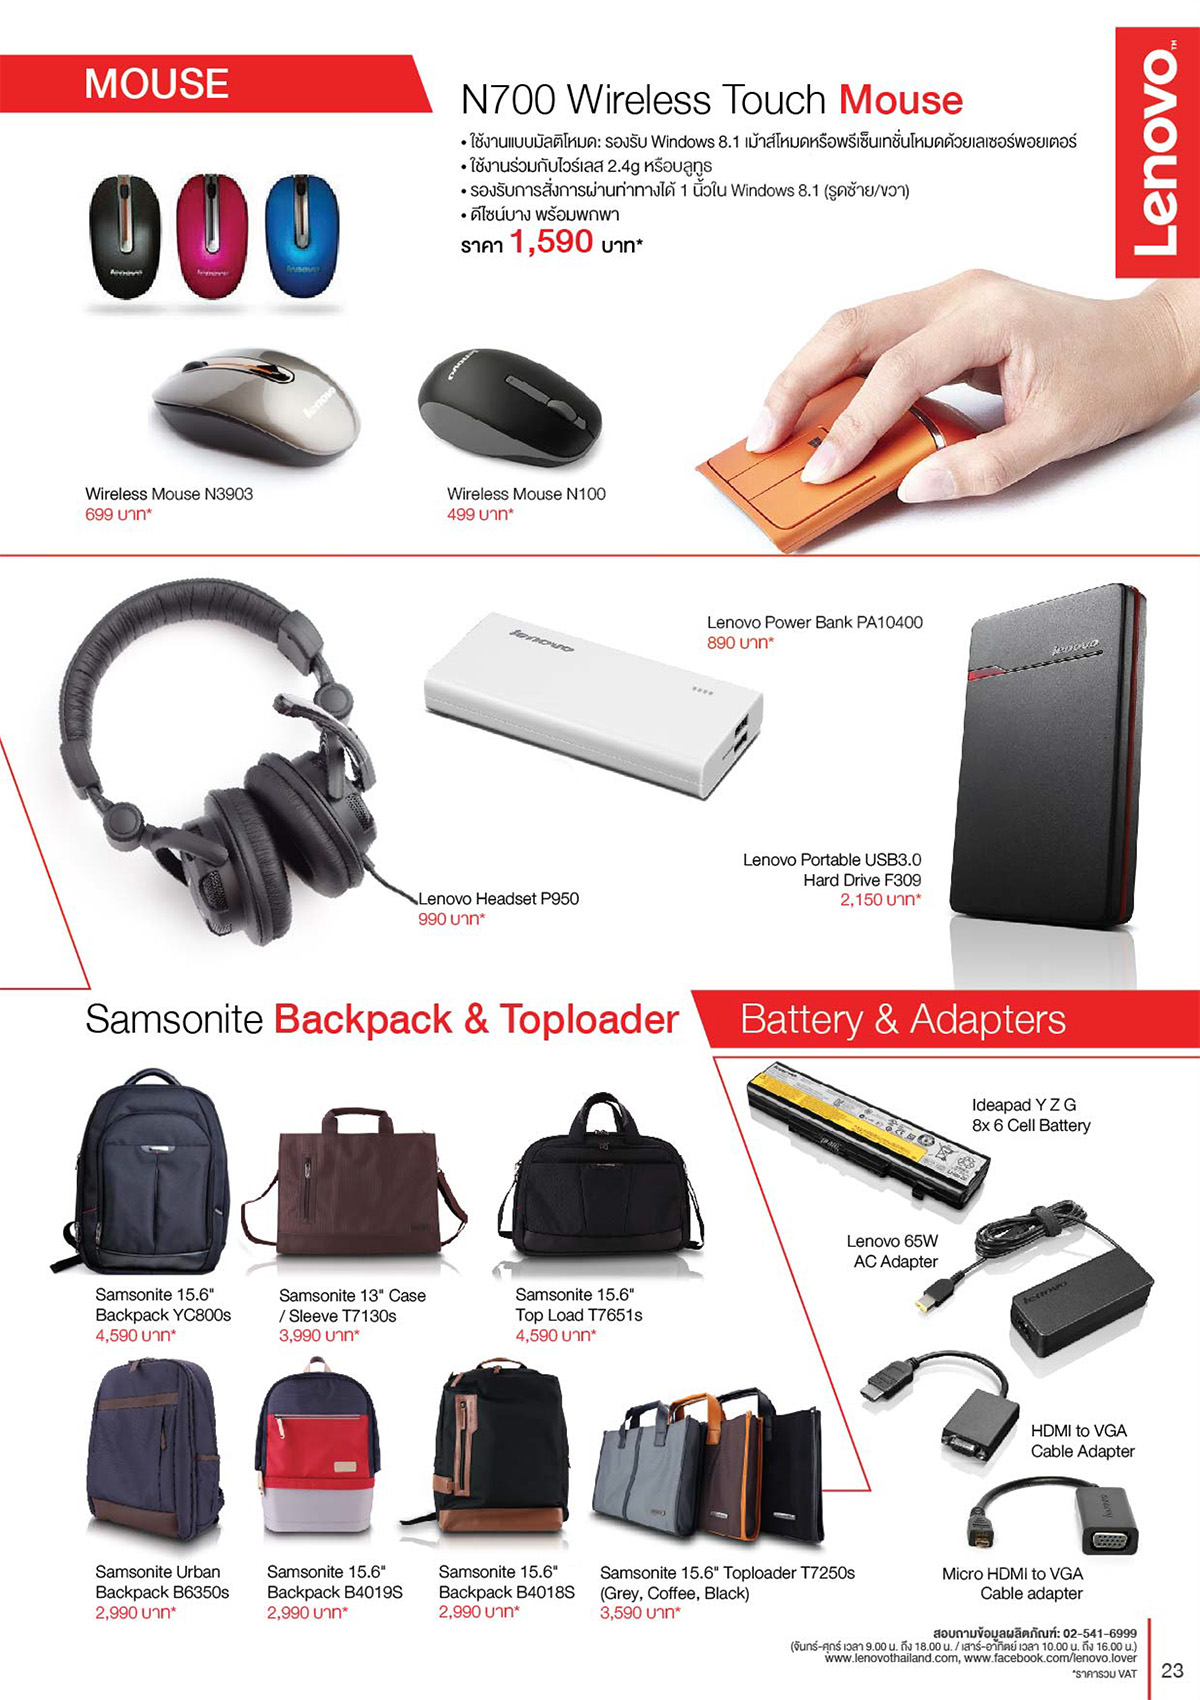 Lenovo Consumer Product Catalog Q2FY15_Final AW-23